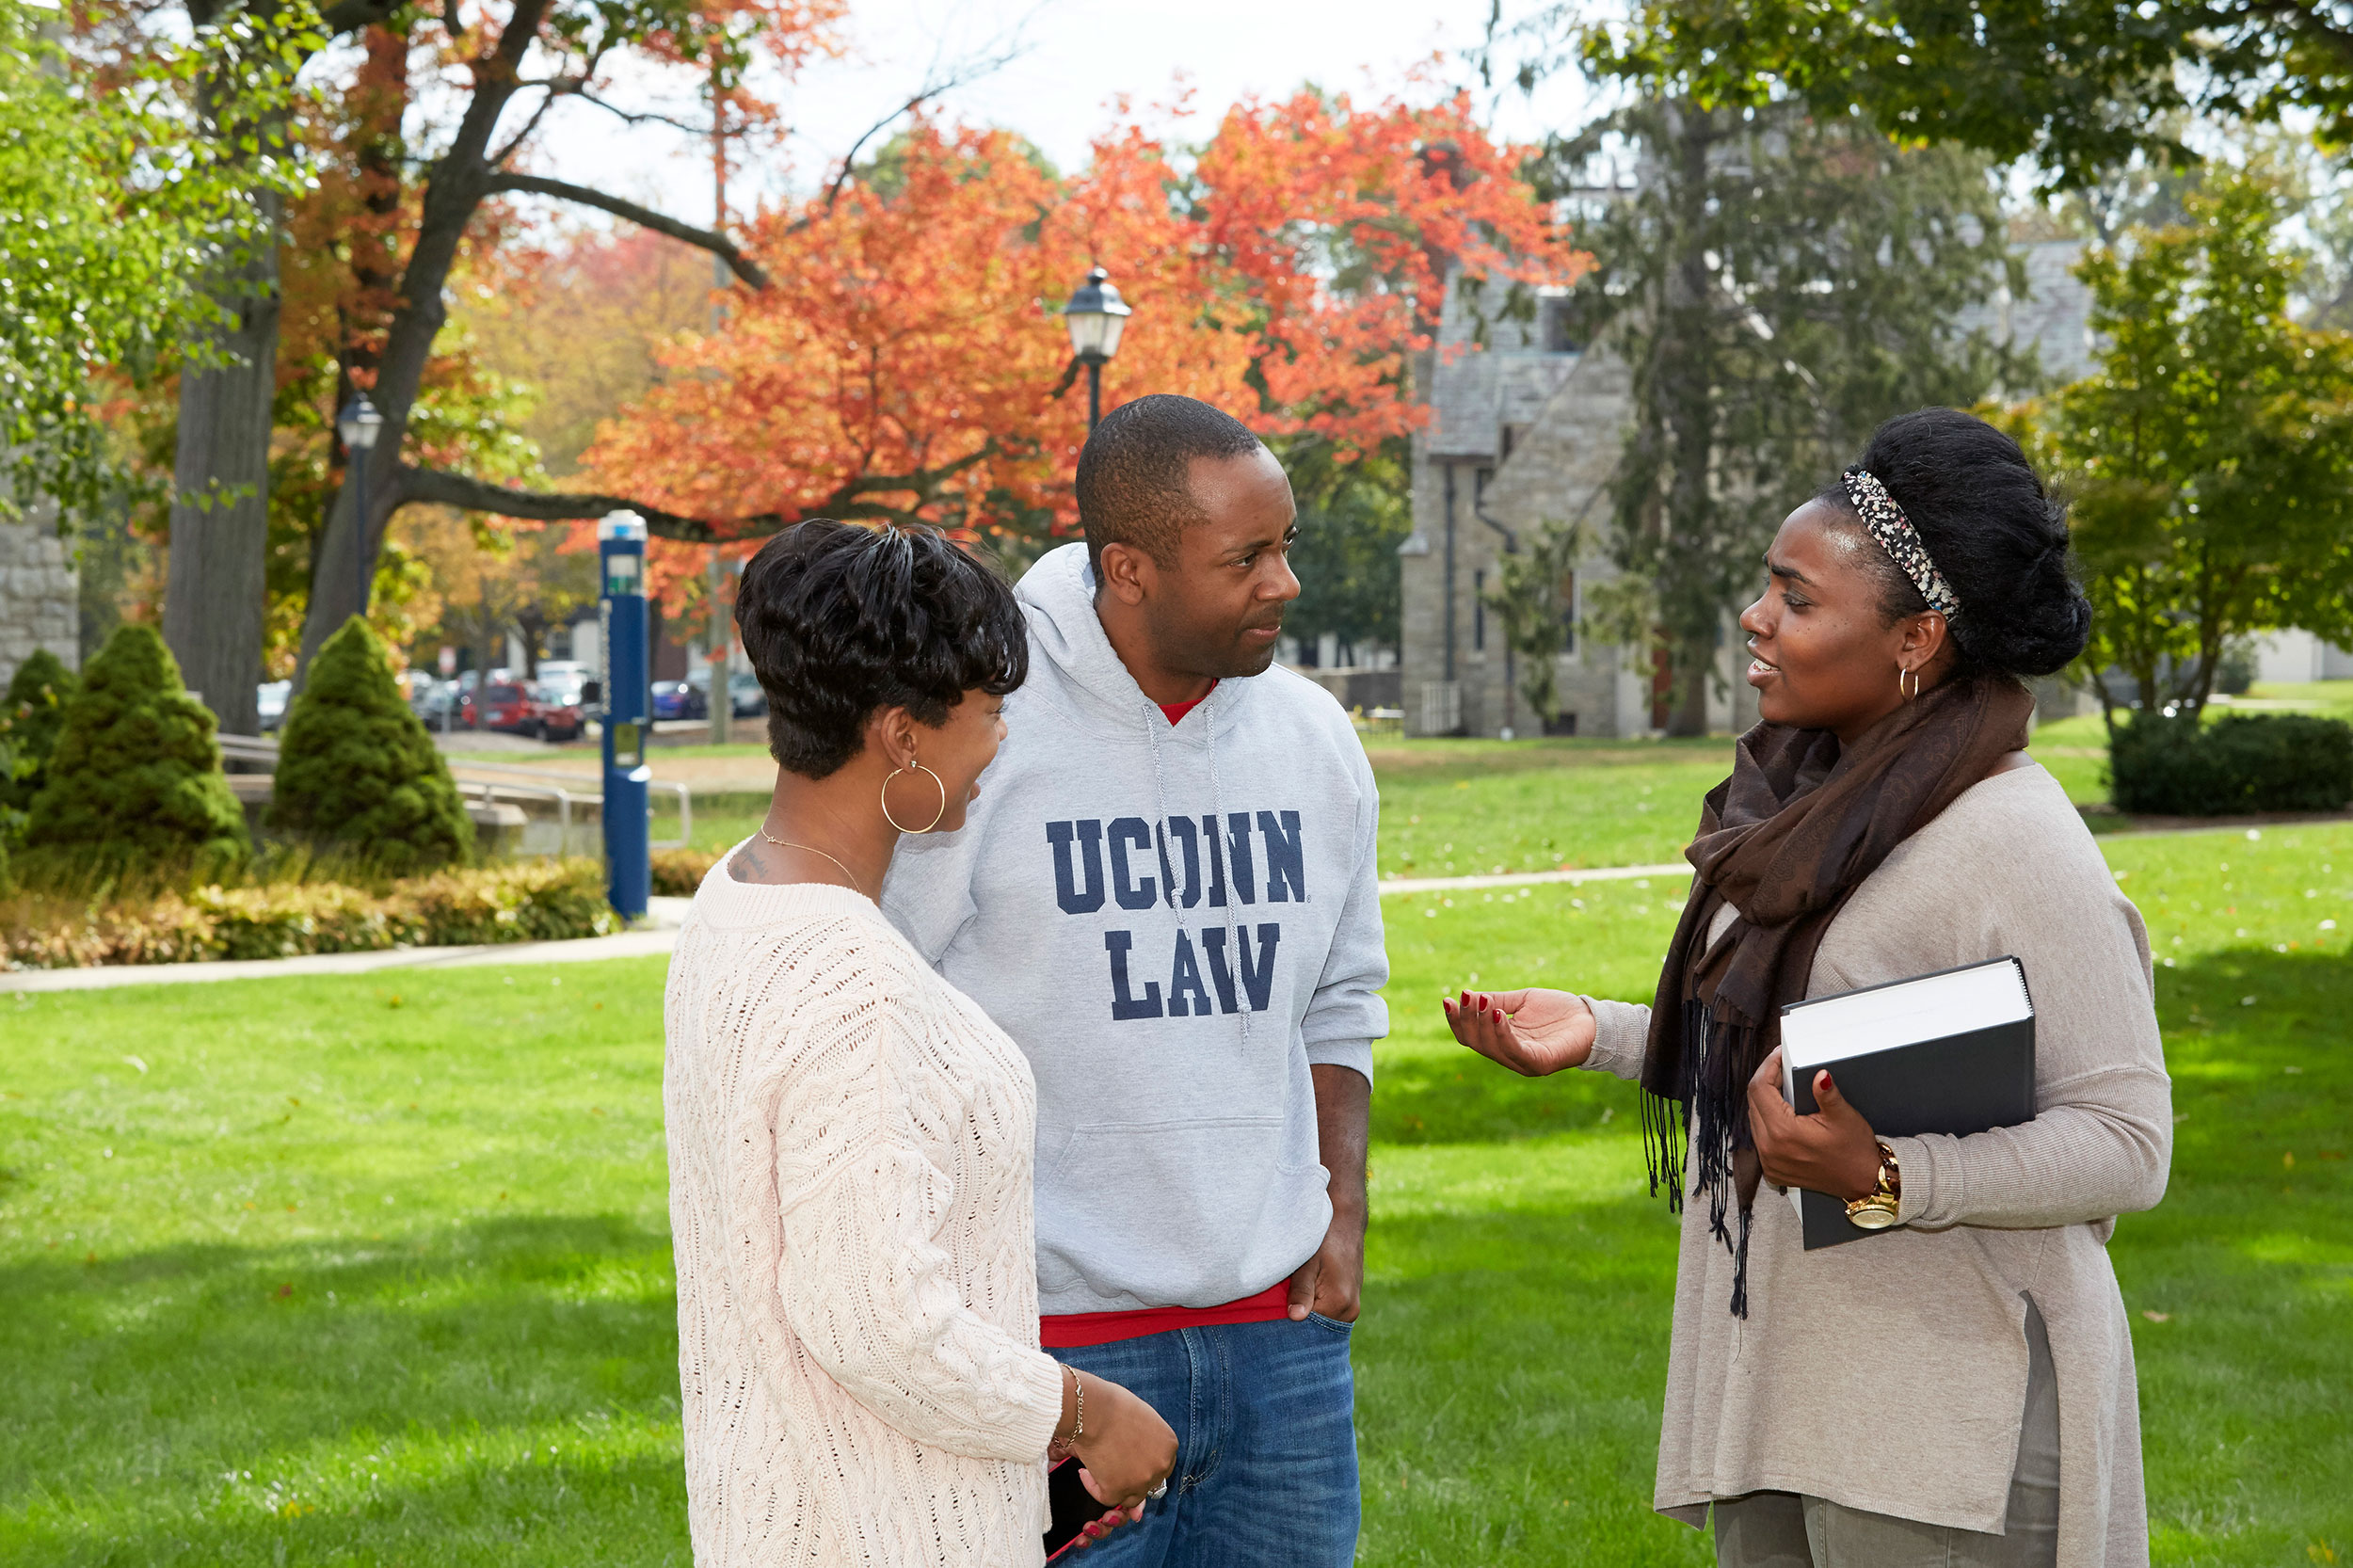 UConn Law students